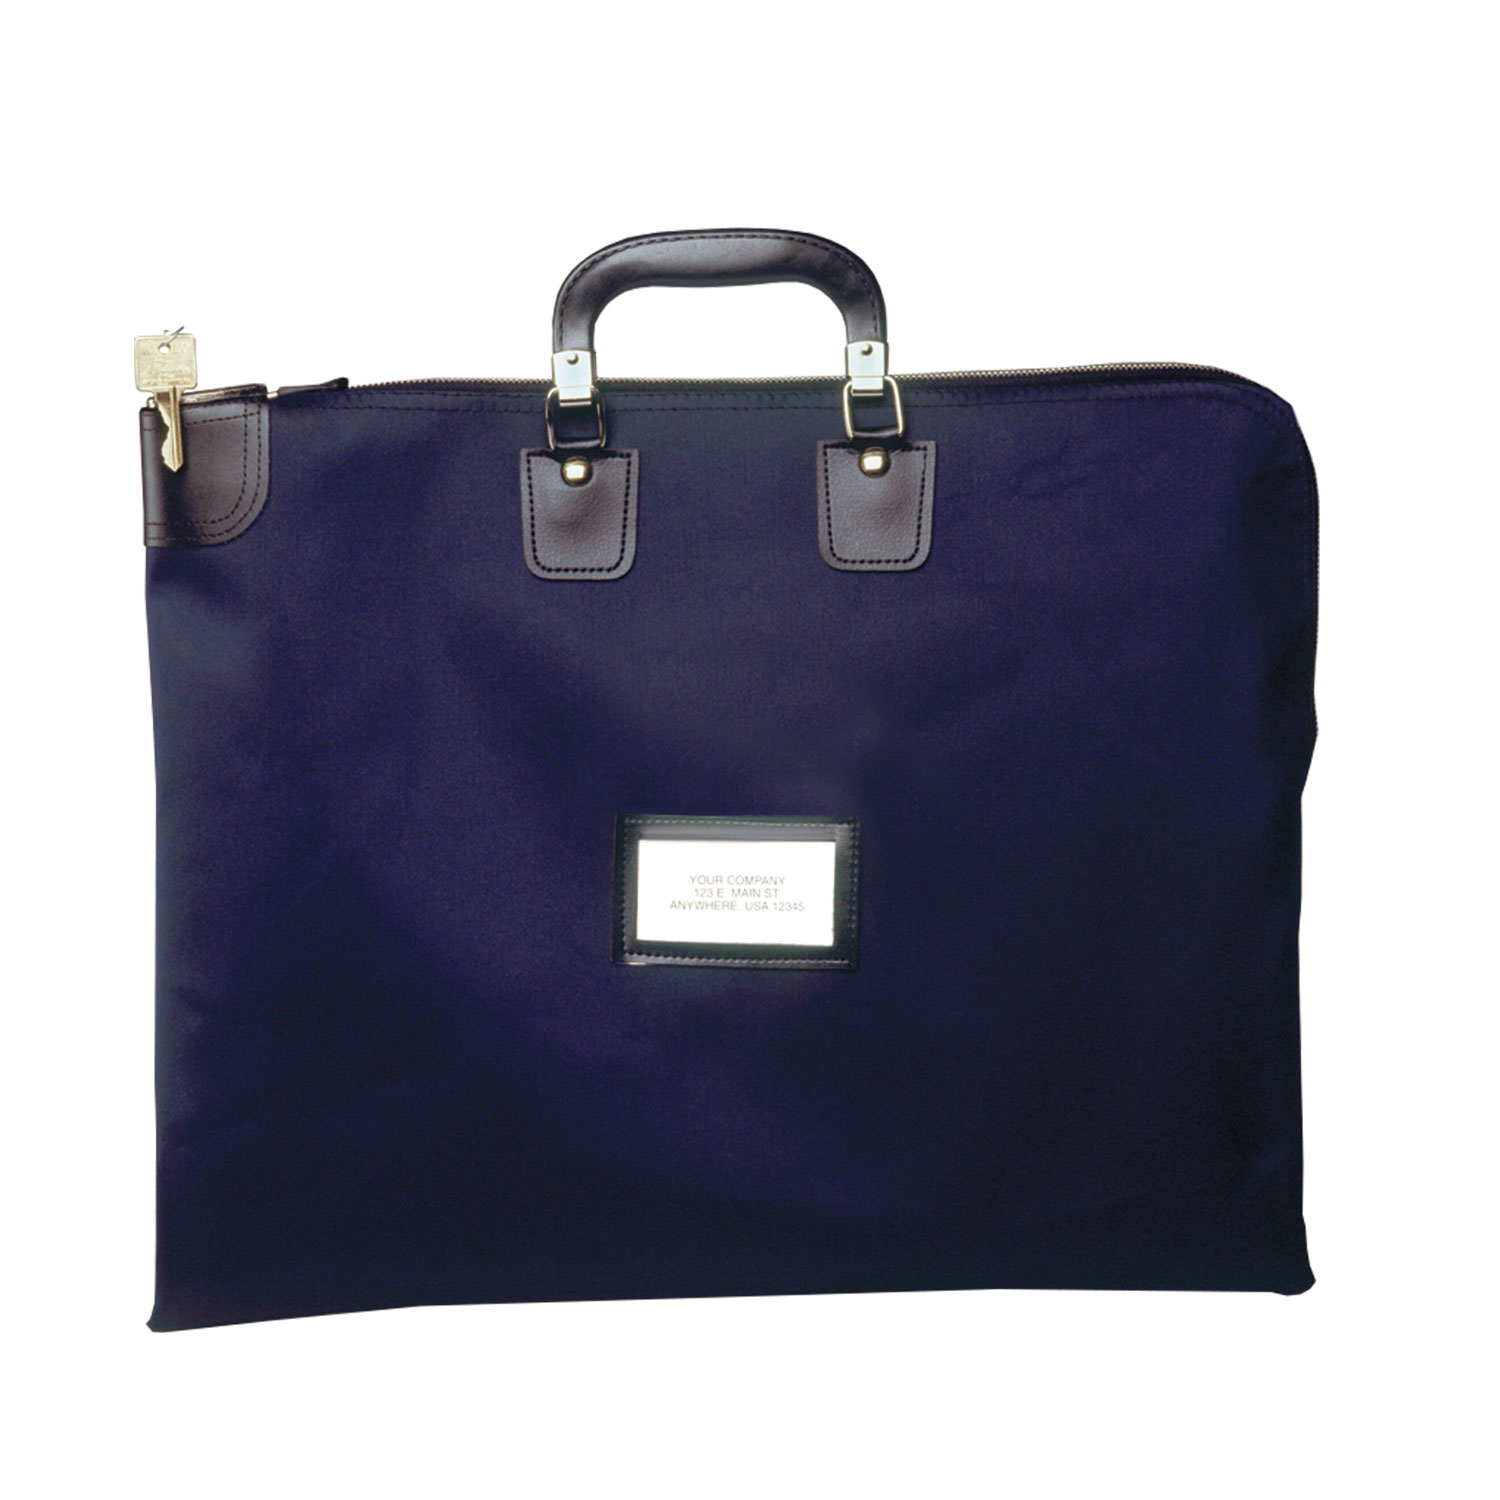 Locking-Bags-with-Handles-GSA